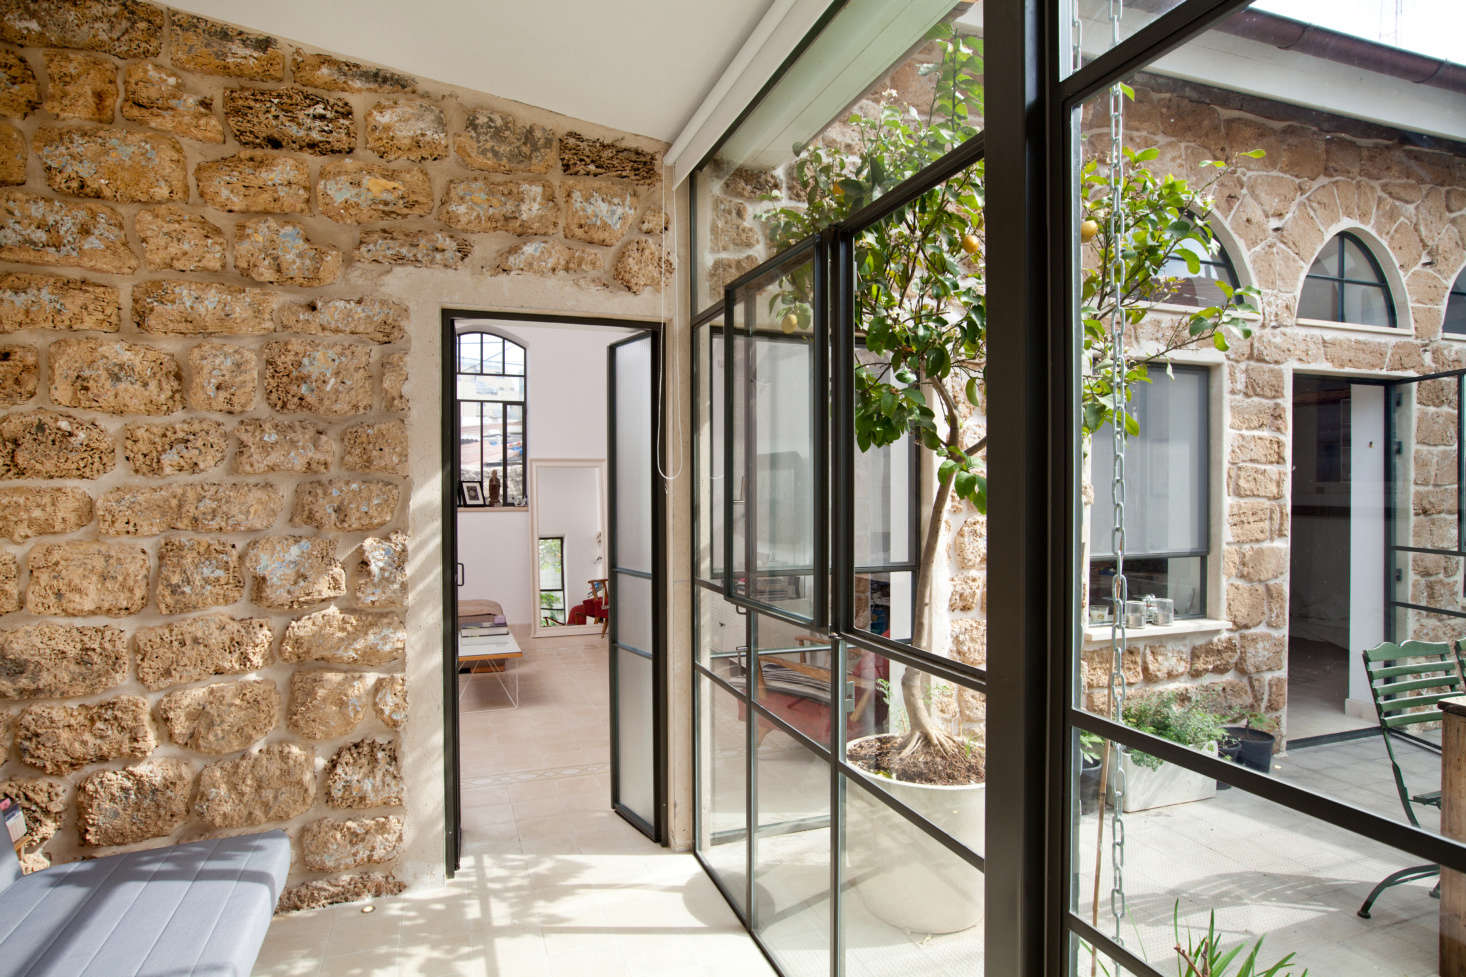 Another glass and steel wall makes the interiors feel like an extension of the courtyard..